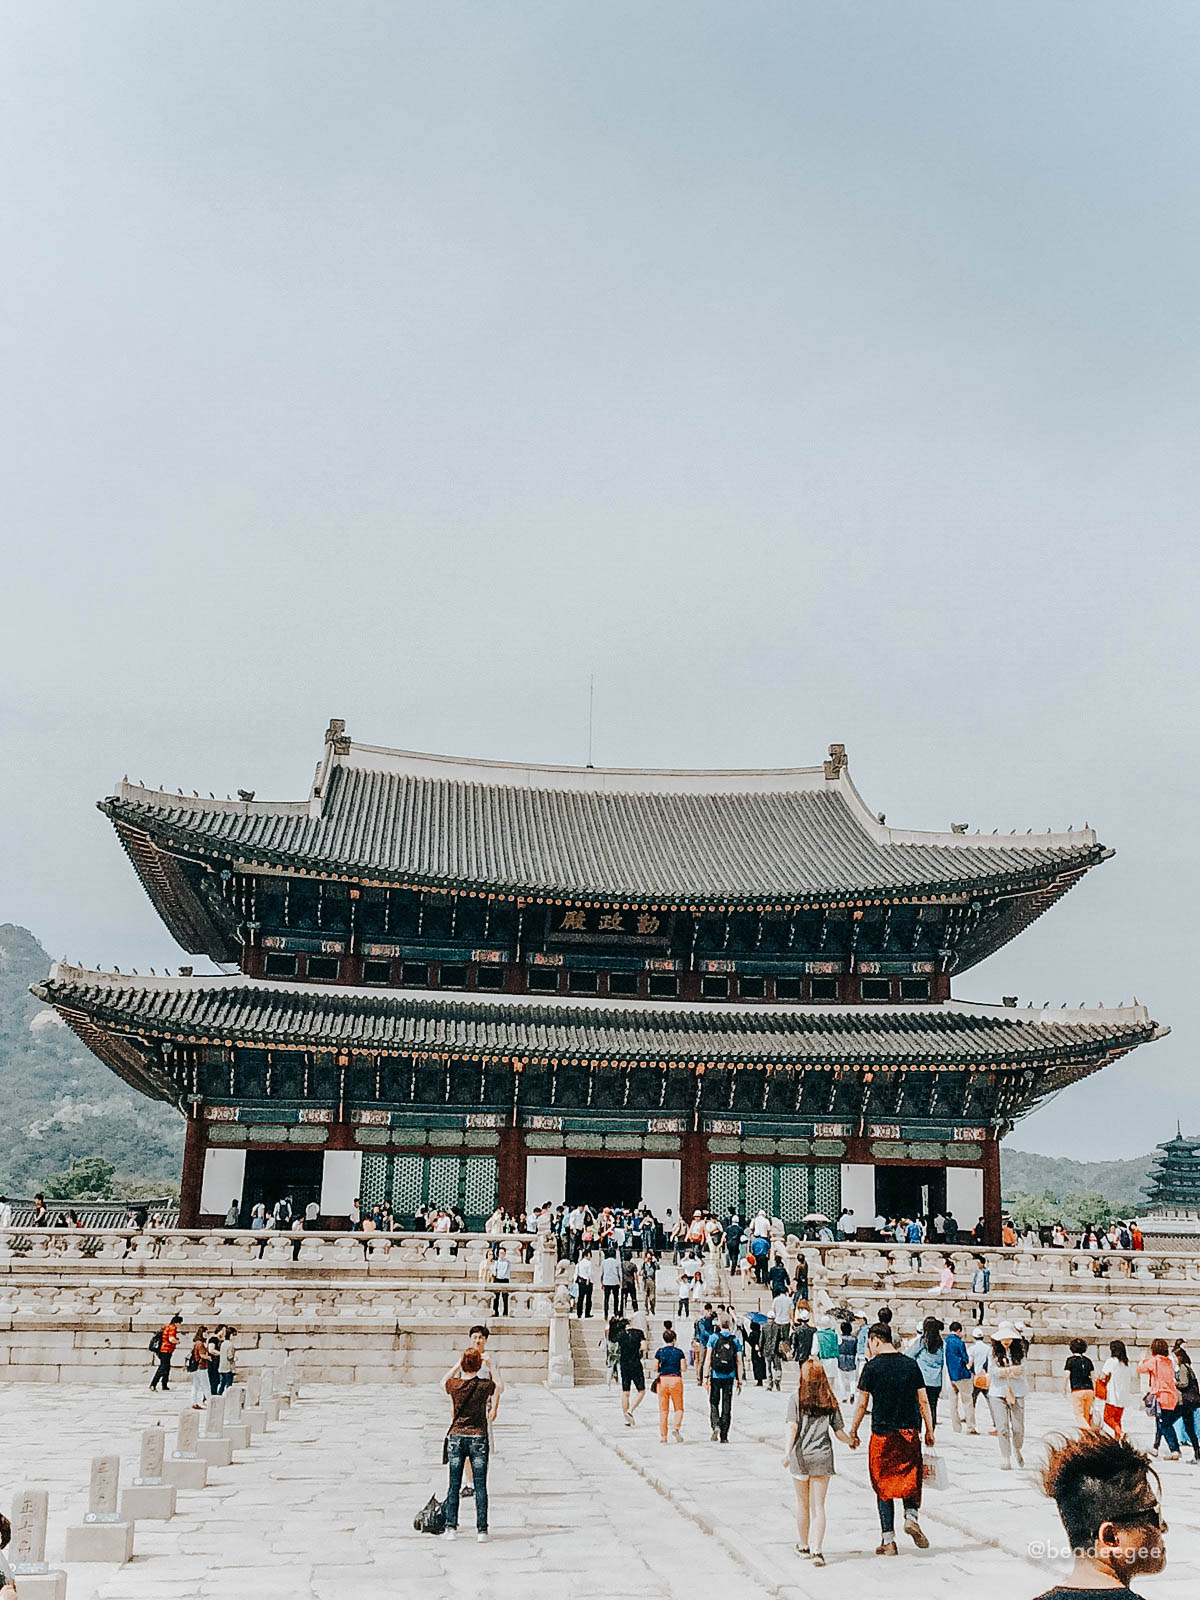 A palace in seoul with so many tourists